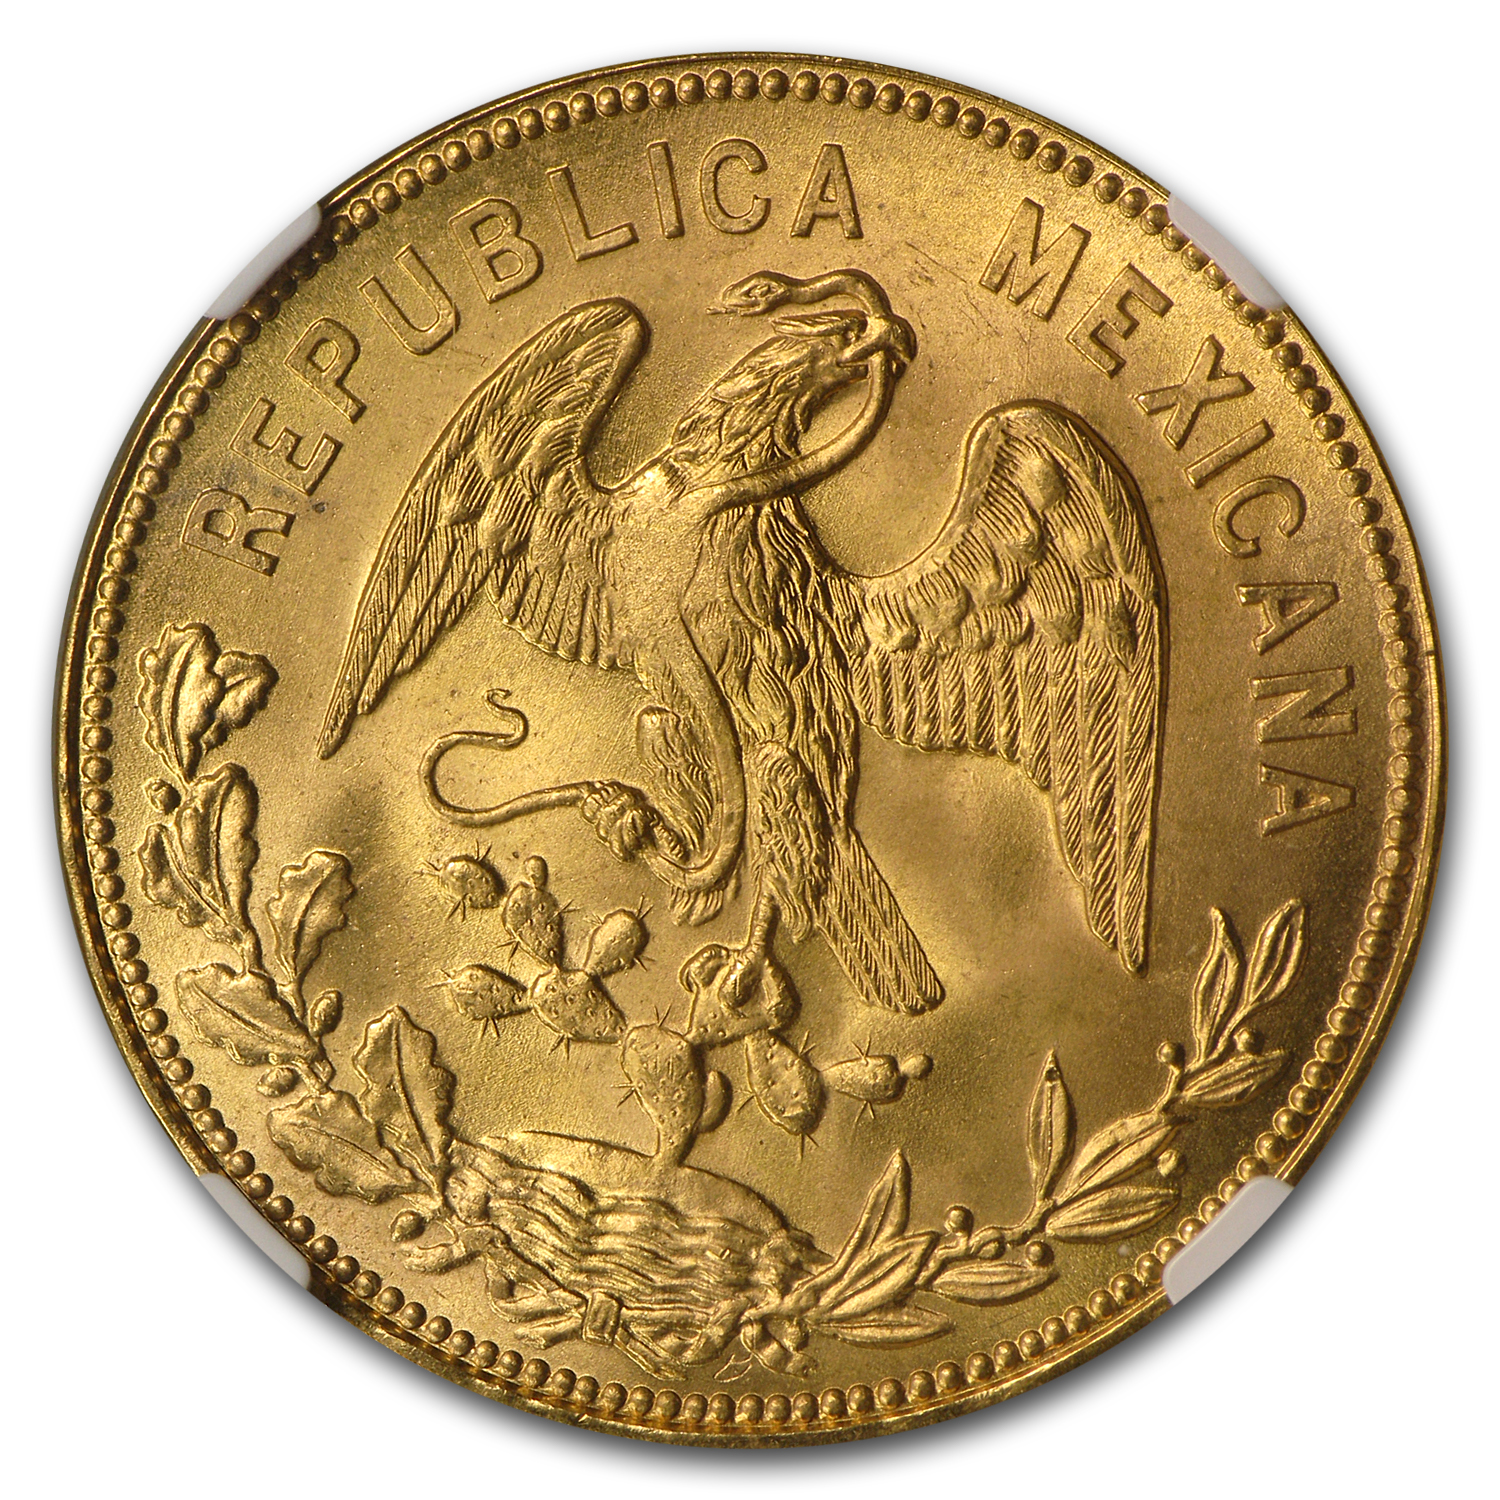 Mexico 1953 Year of Hidalgo Gold Medal - MS-66 NGC